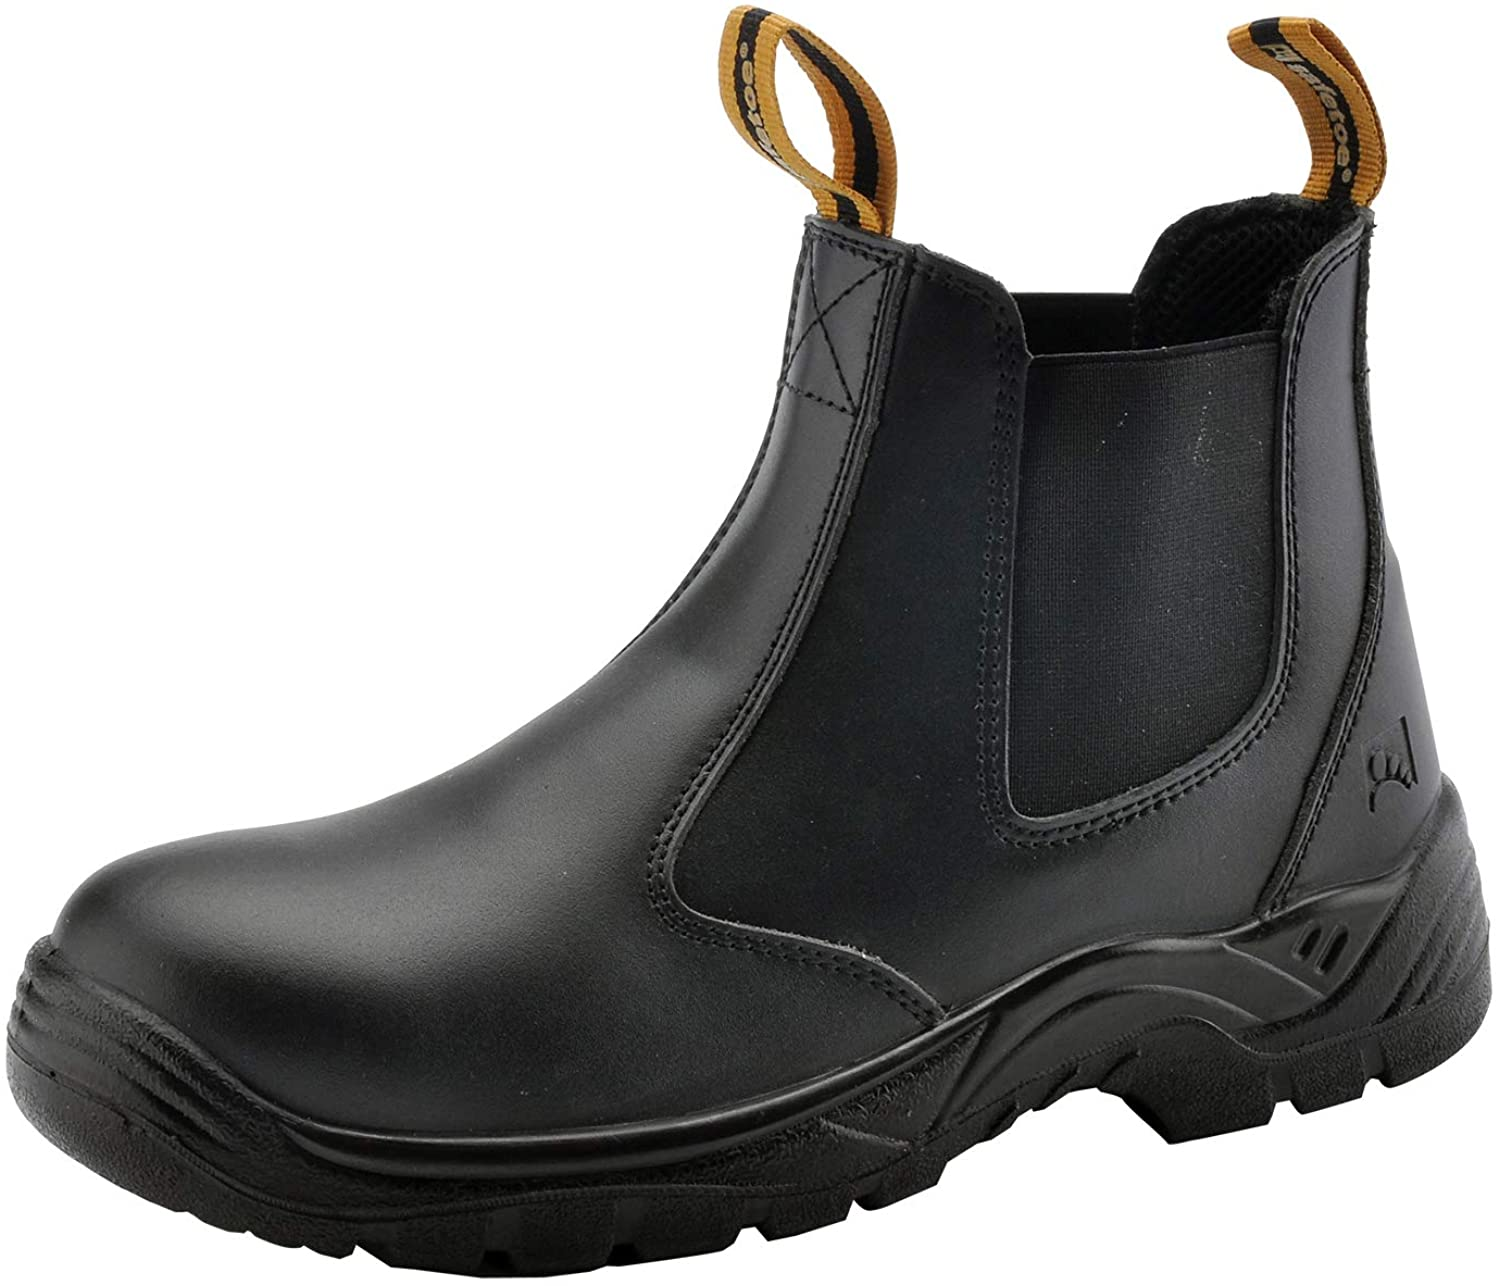 Mens excellence Work Boots Easy-to-use Steel Toe Chelsea Leather Water Cow Safety